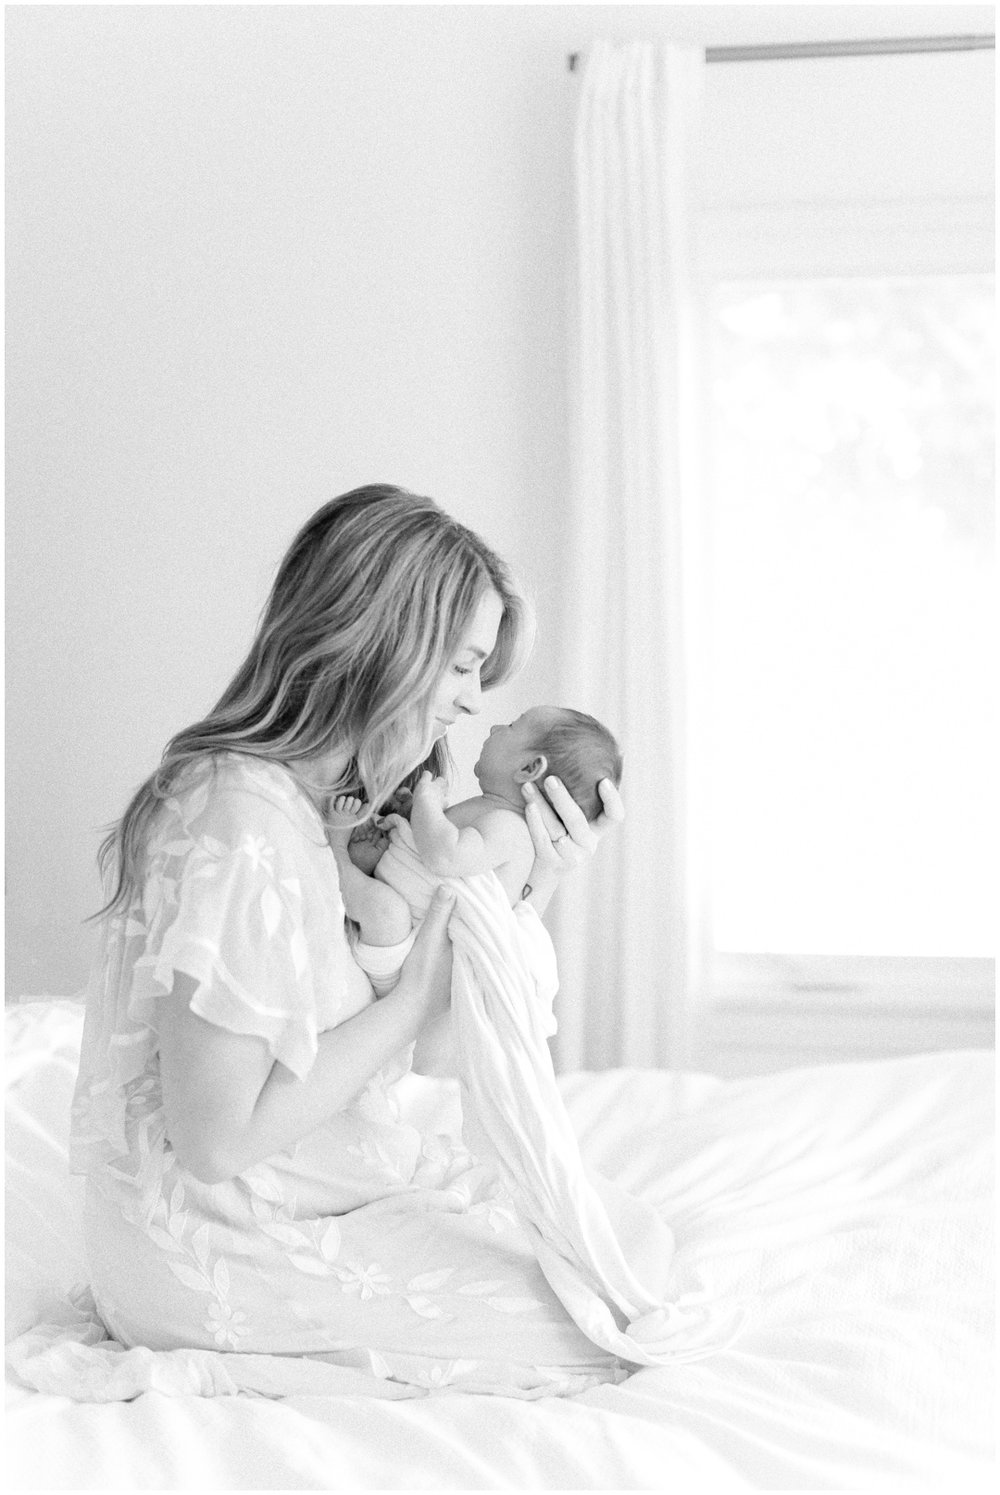 Newport_Beach_Newborn_Photographer_Newport_Beach_Maternity_Photographer_Orange_County_Family_Photographer_Cori_Kleckner_Photography_Huntington_Beach_Photographer__Erin_Dooney_Brandon_Dooney__Avery_Dooney_Family_Photos__2828.jpg